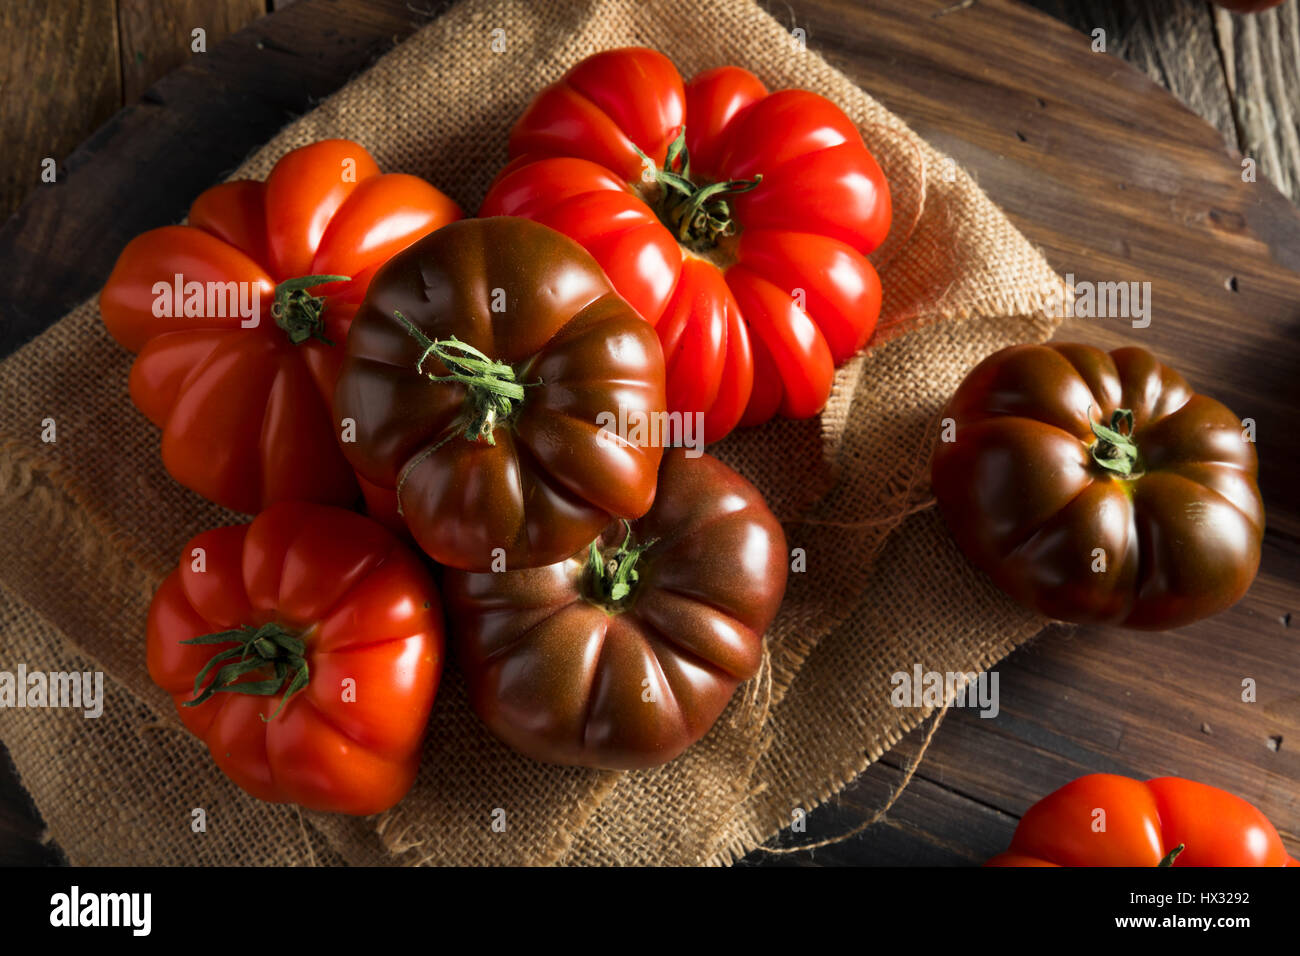 Raw Organic Red and Brown Heirloom Tomatoes Fresh of the Vine - Stock Image